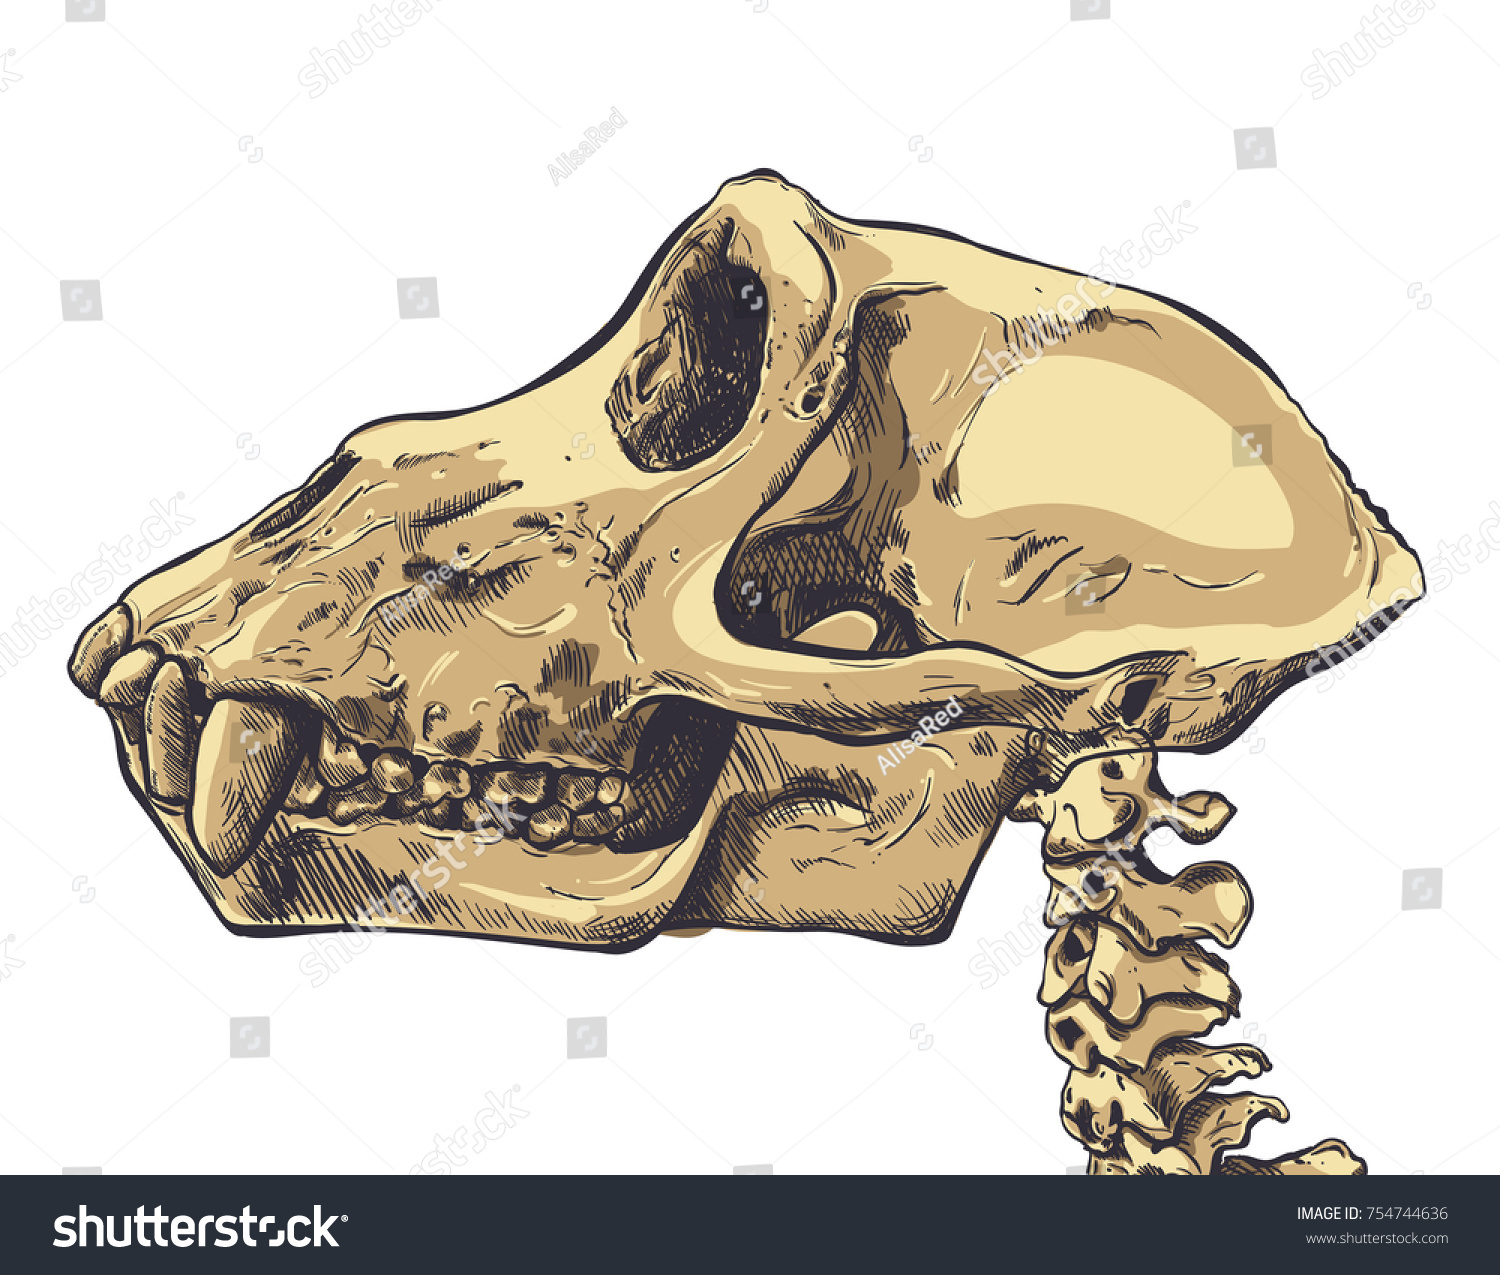 hight resolution of illustration of a monkey skull on background vector